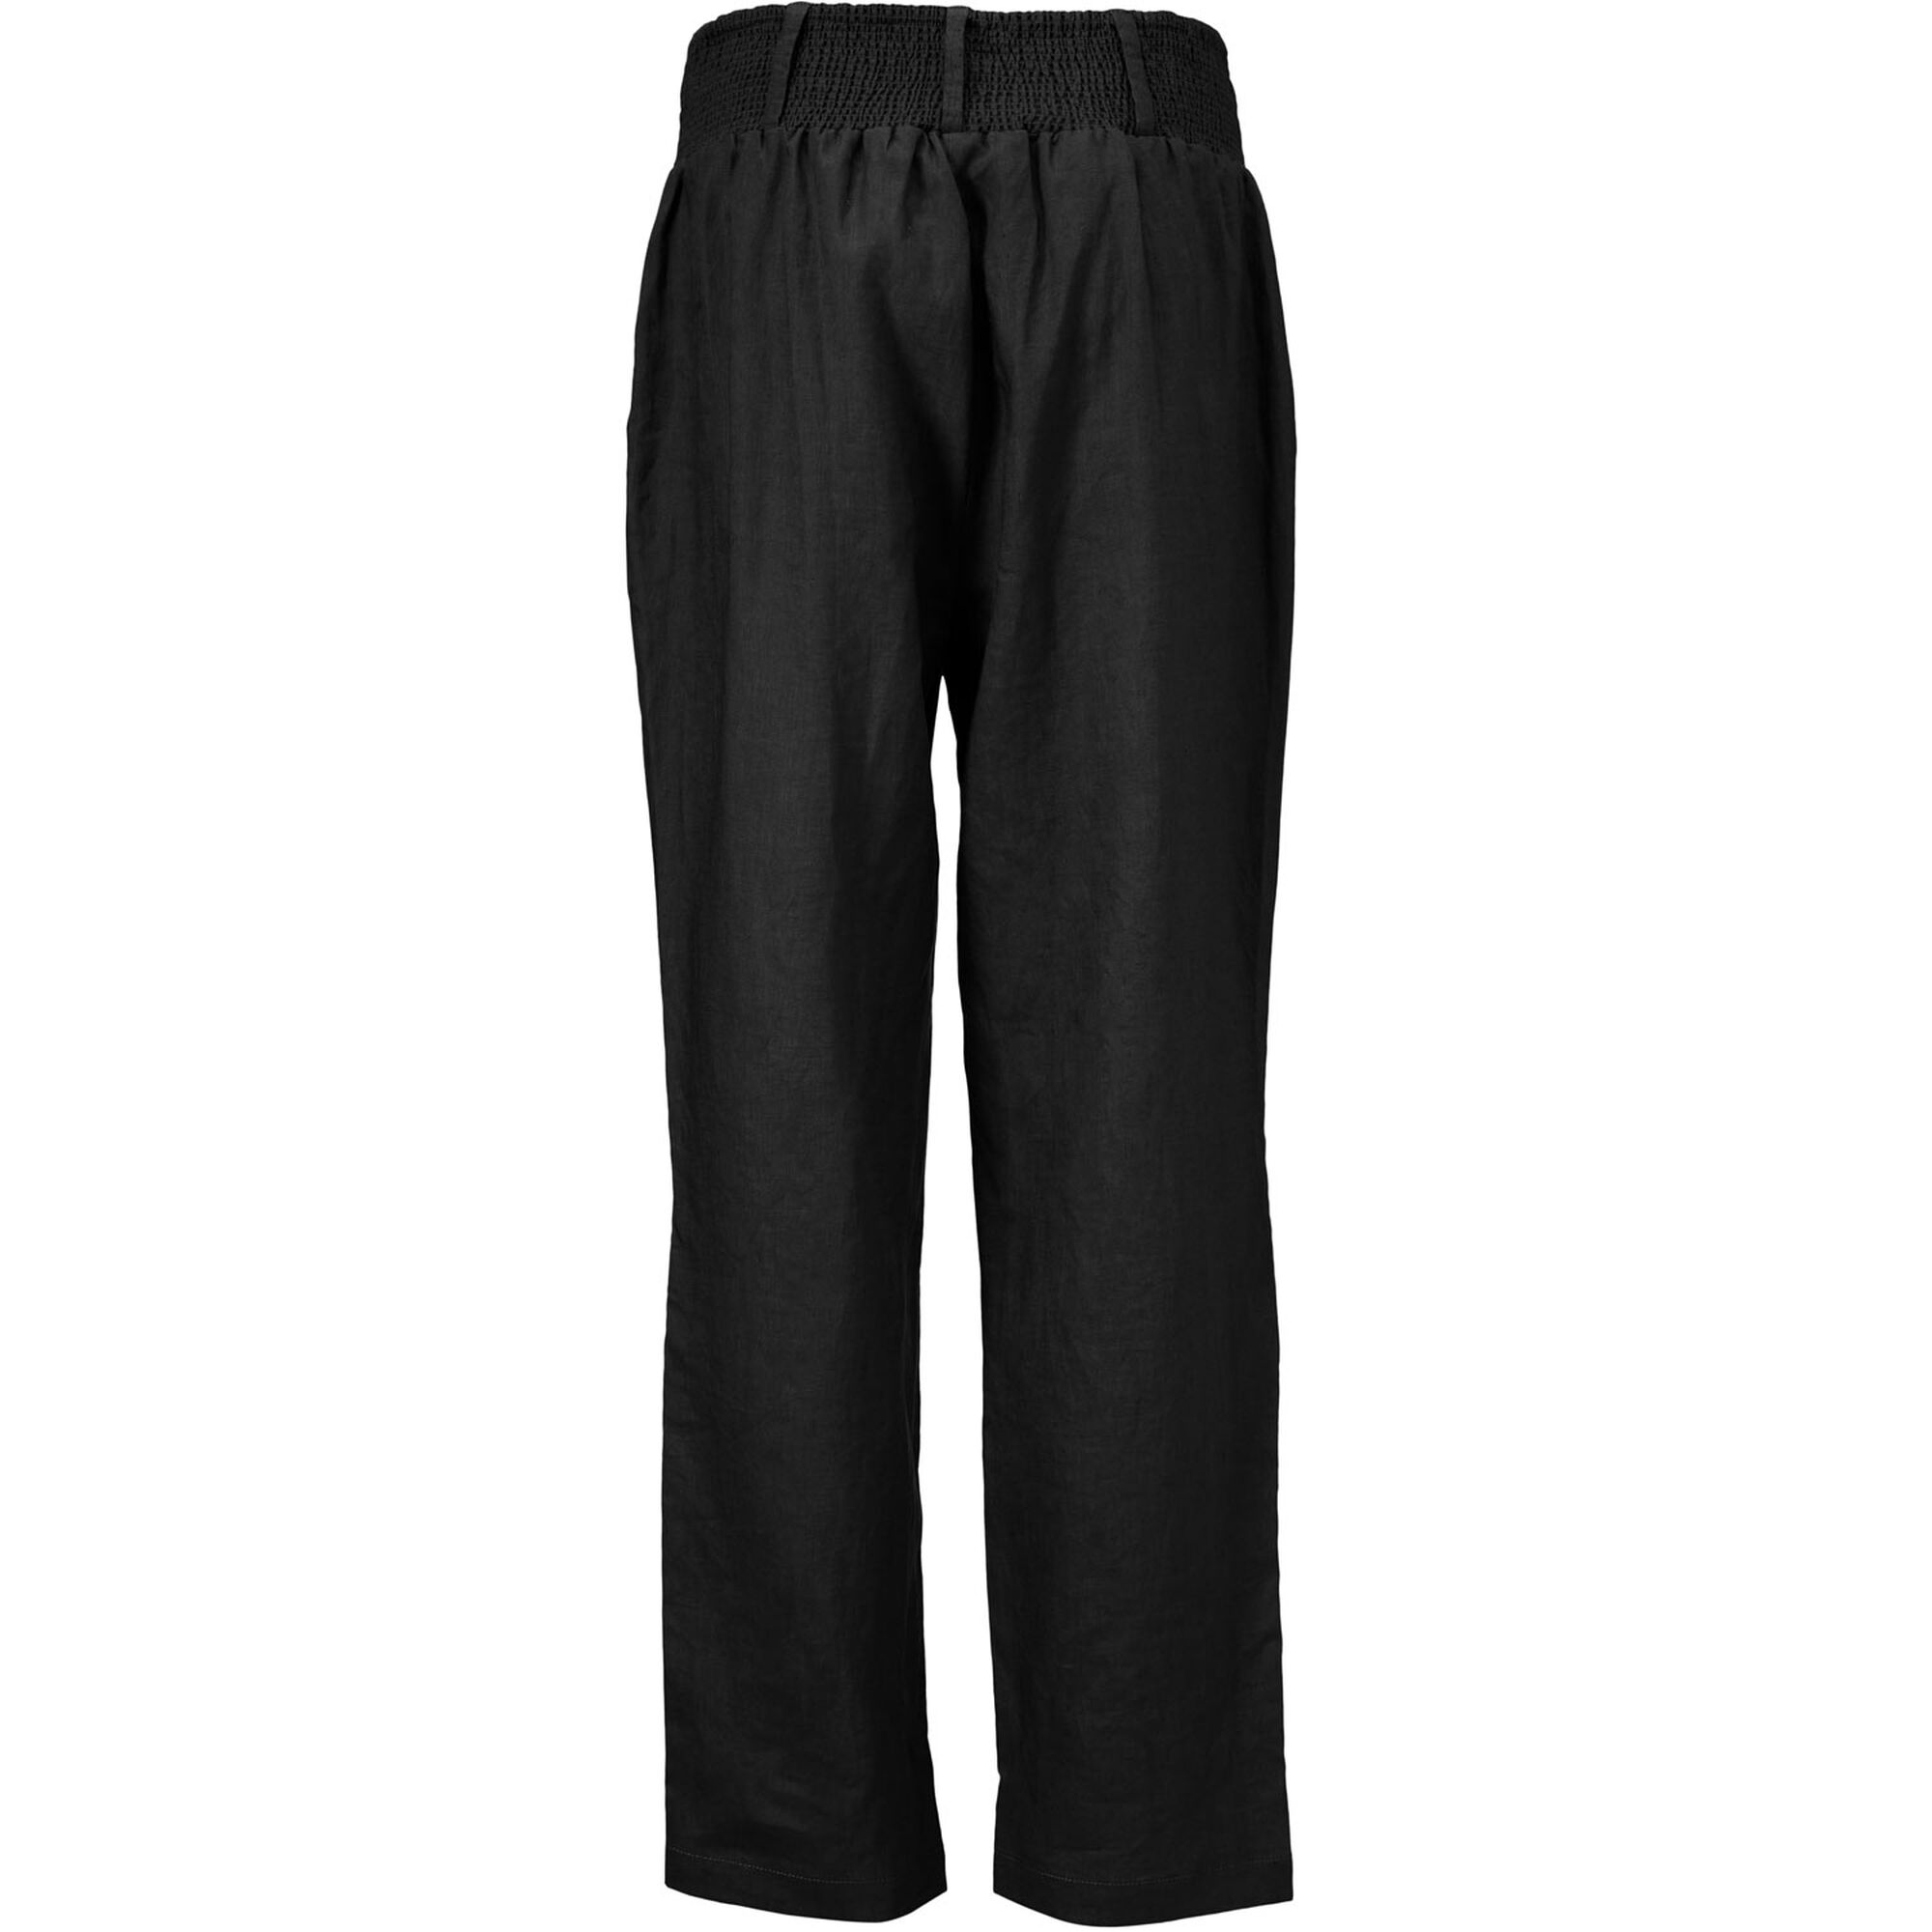 PETRONI TROUSERS, Black, hi-res